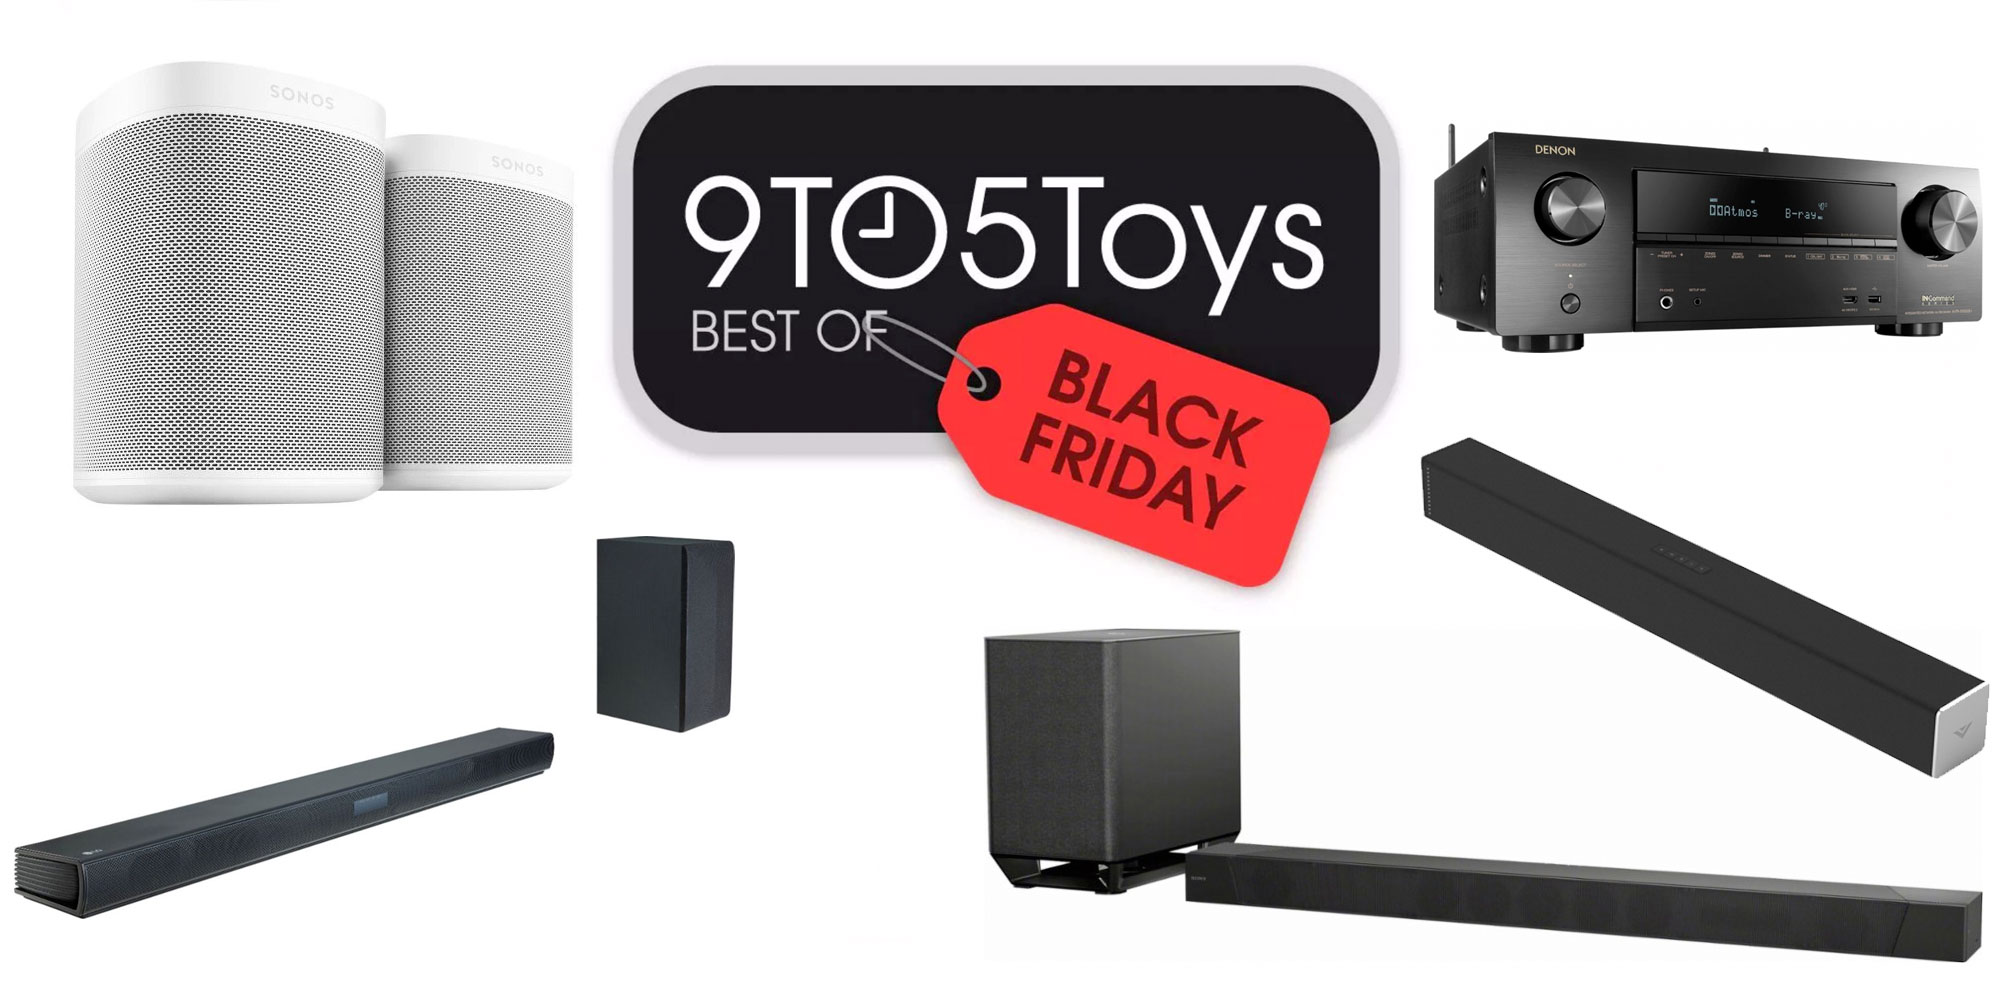 Best Black Friday 2018 - Home Theater: Sonos, AirPlay 2